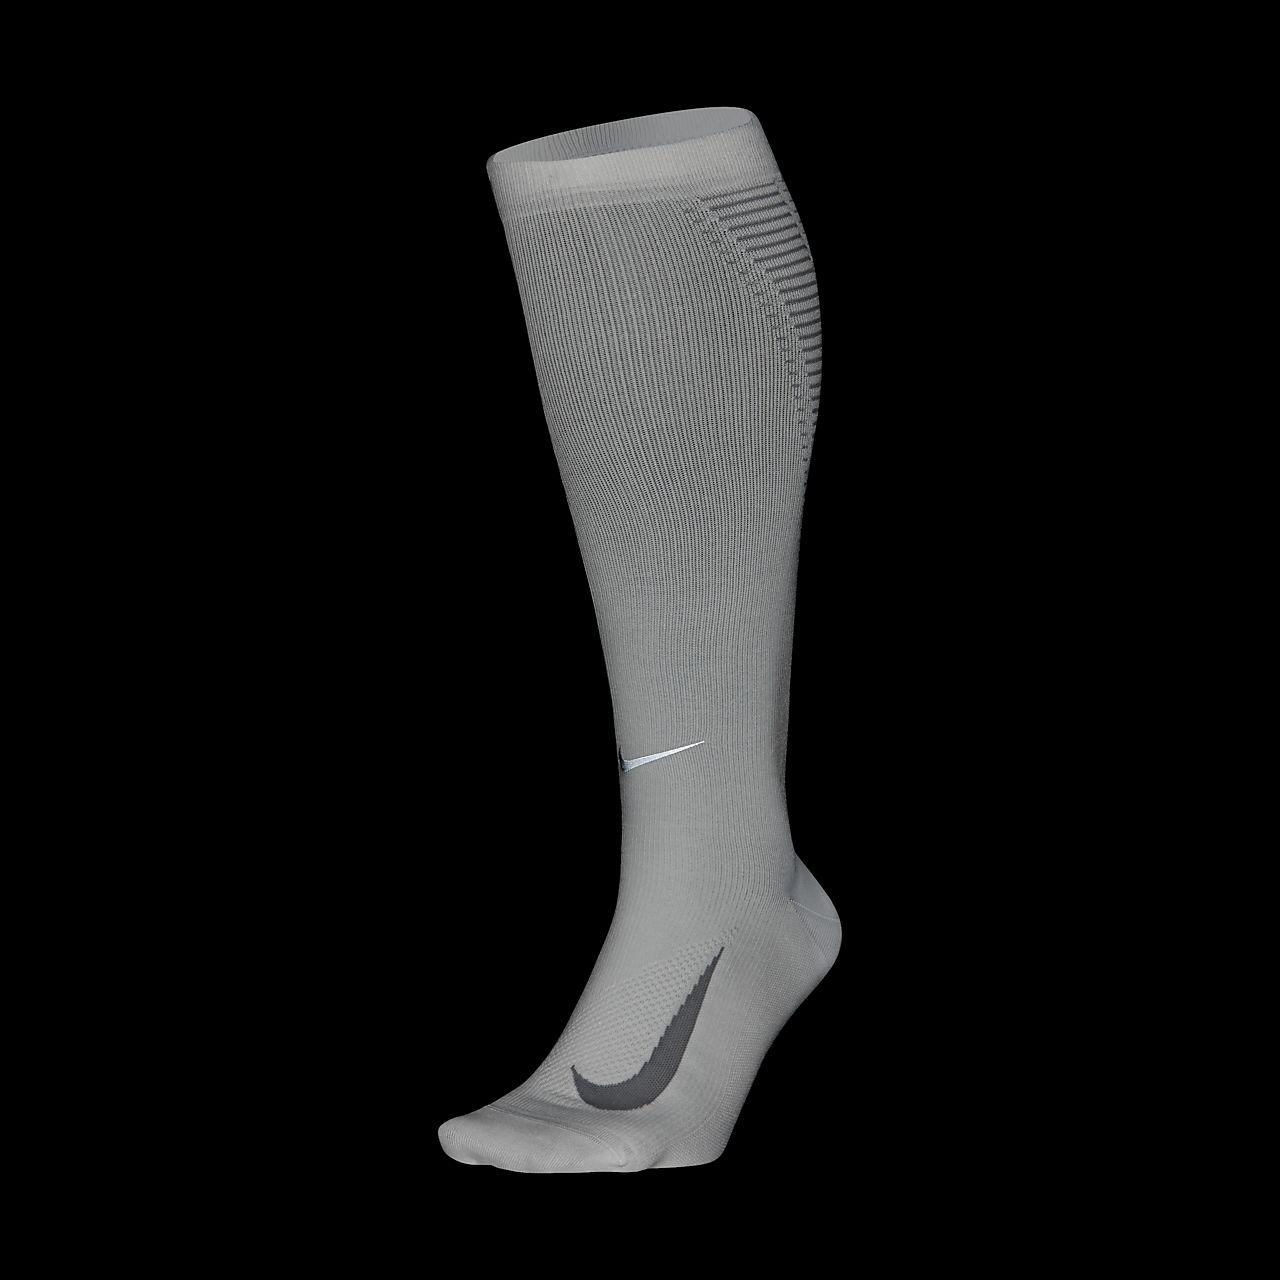 nike compresion running